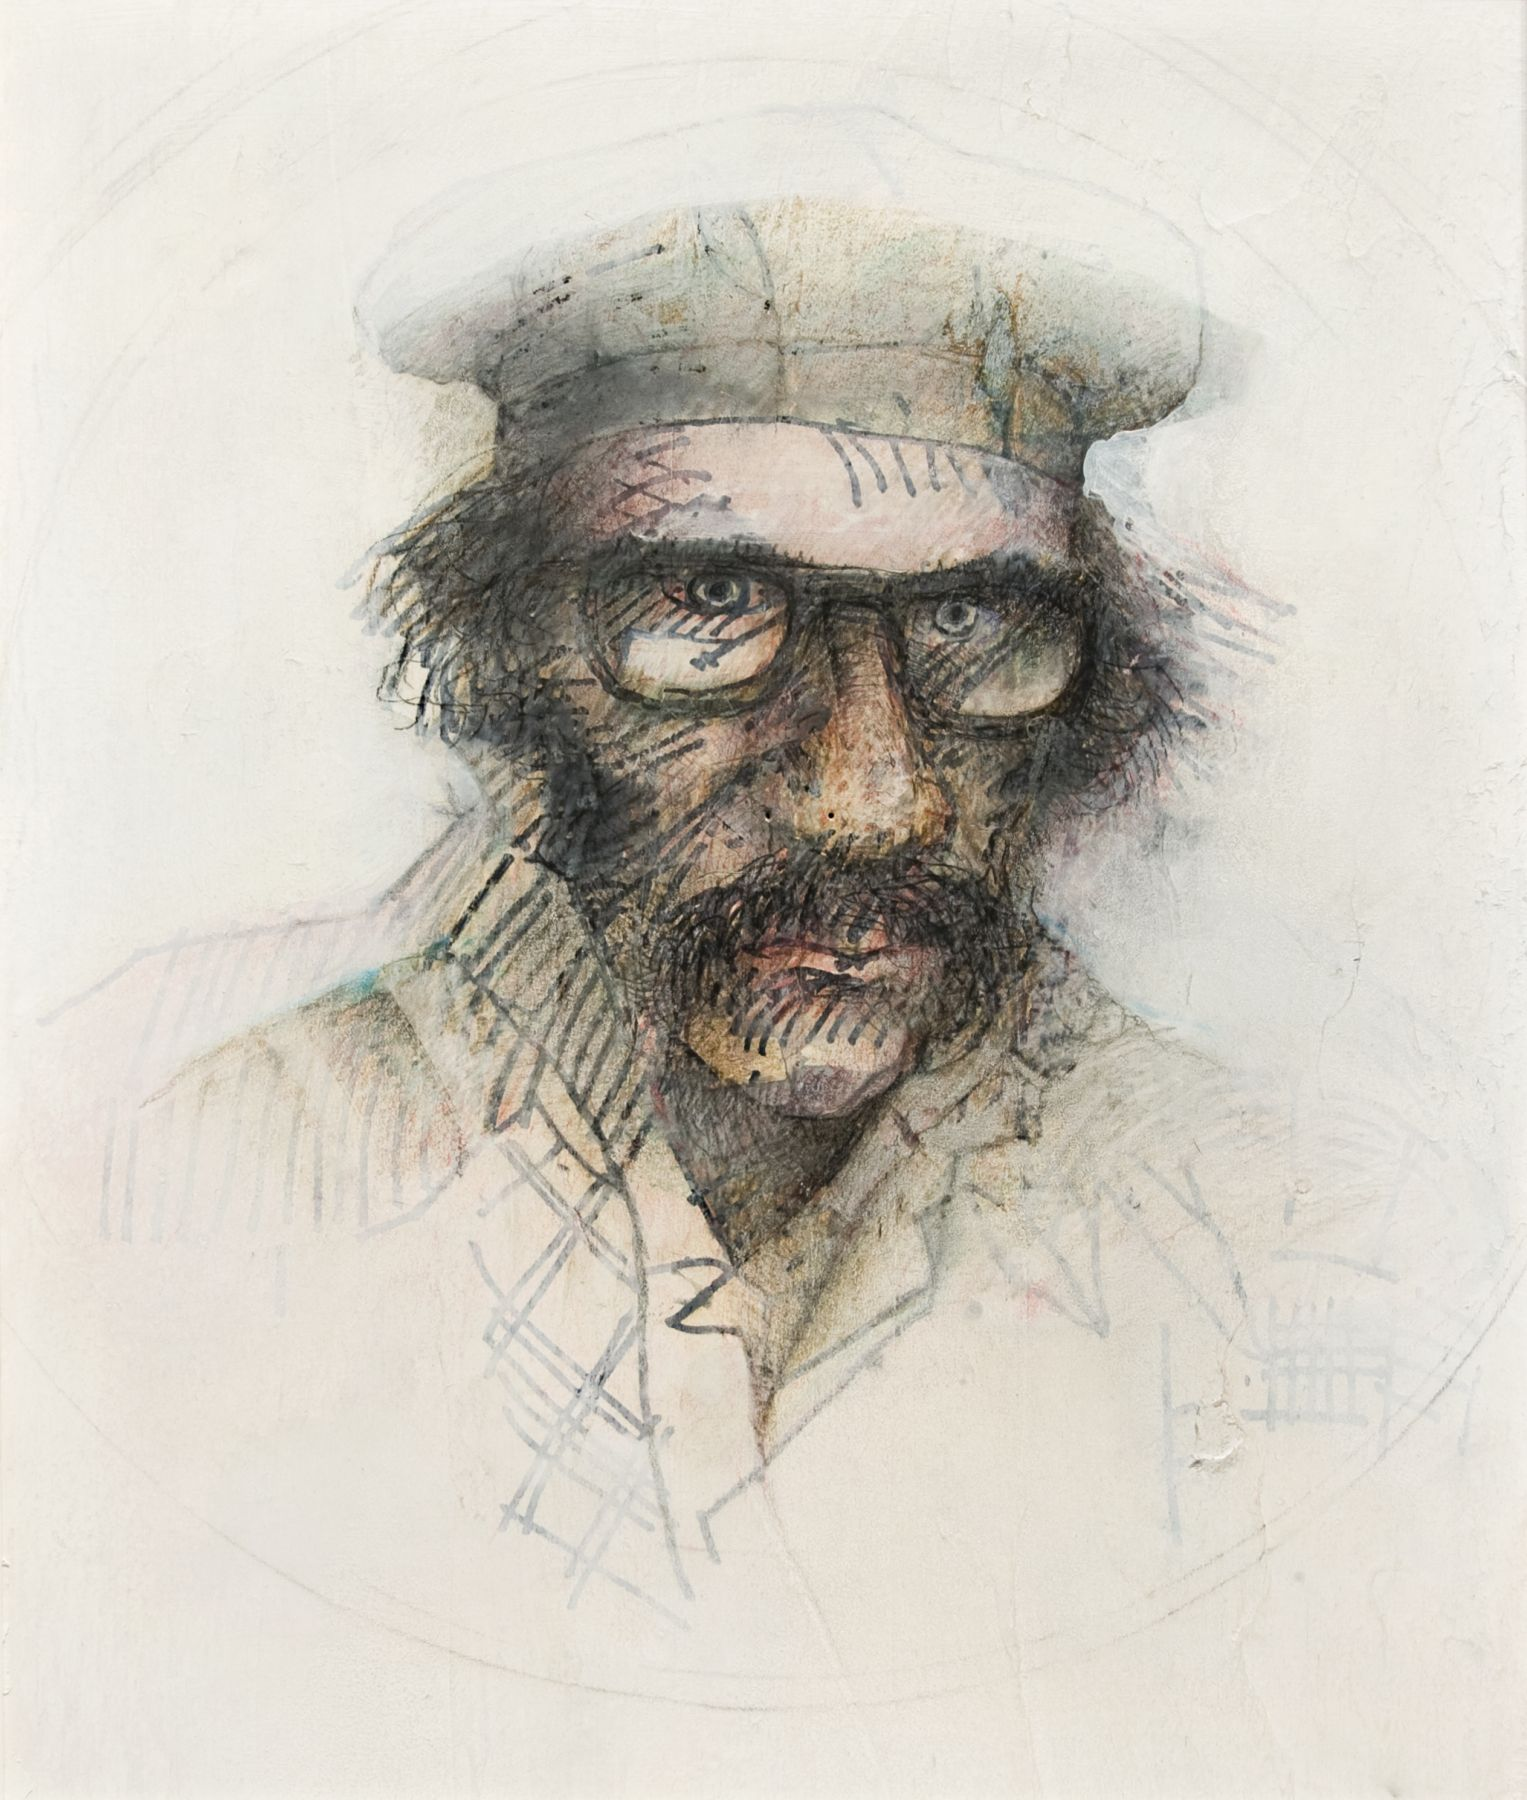 Gregory Gillespie, Self-Portrait with Glasses (SOLD), 1983, mixed media on paper mounted on board, 26 1/2 x 22 1/2 inches